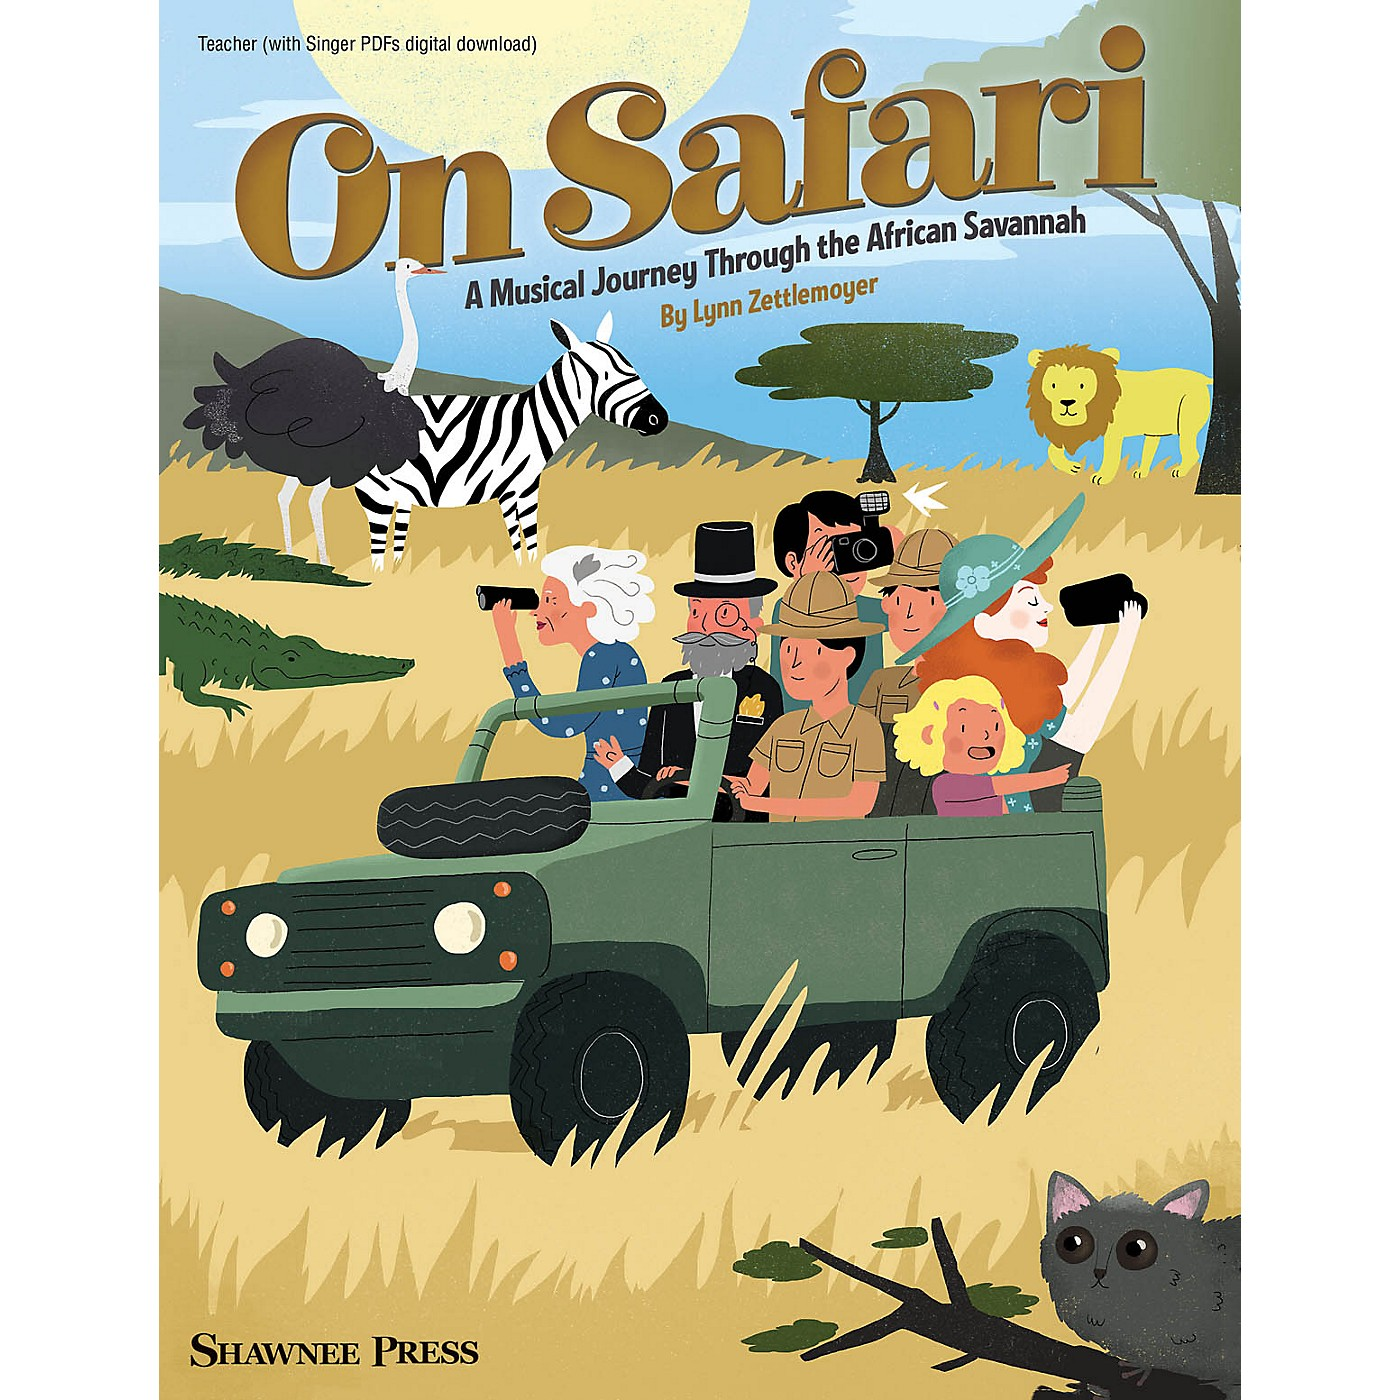 Hal Leonard On Safari (A Musical Journey Through the African Savannah) TEACHER BOOK WITH SGR CODE by Lynn Zettlemoyer thumbnail